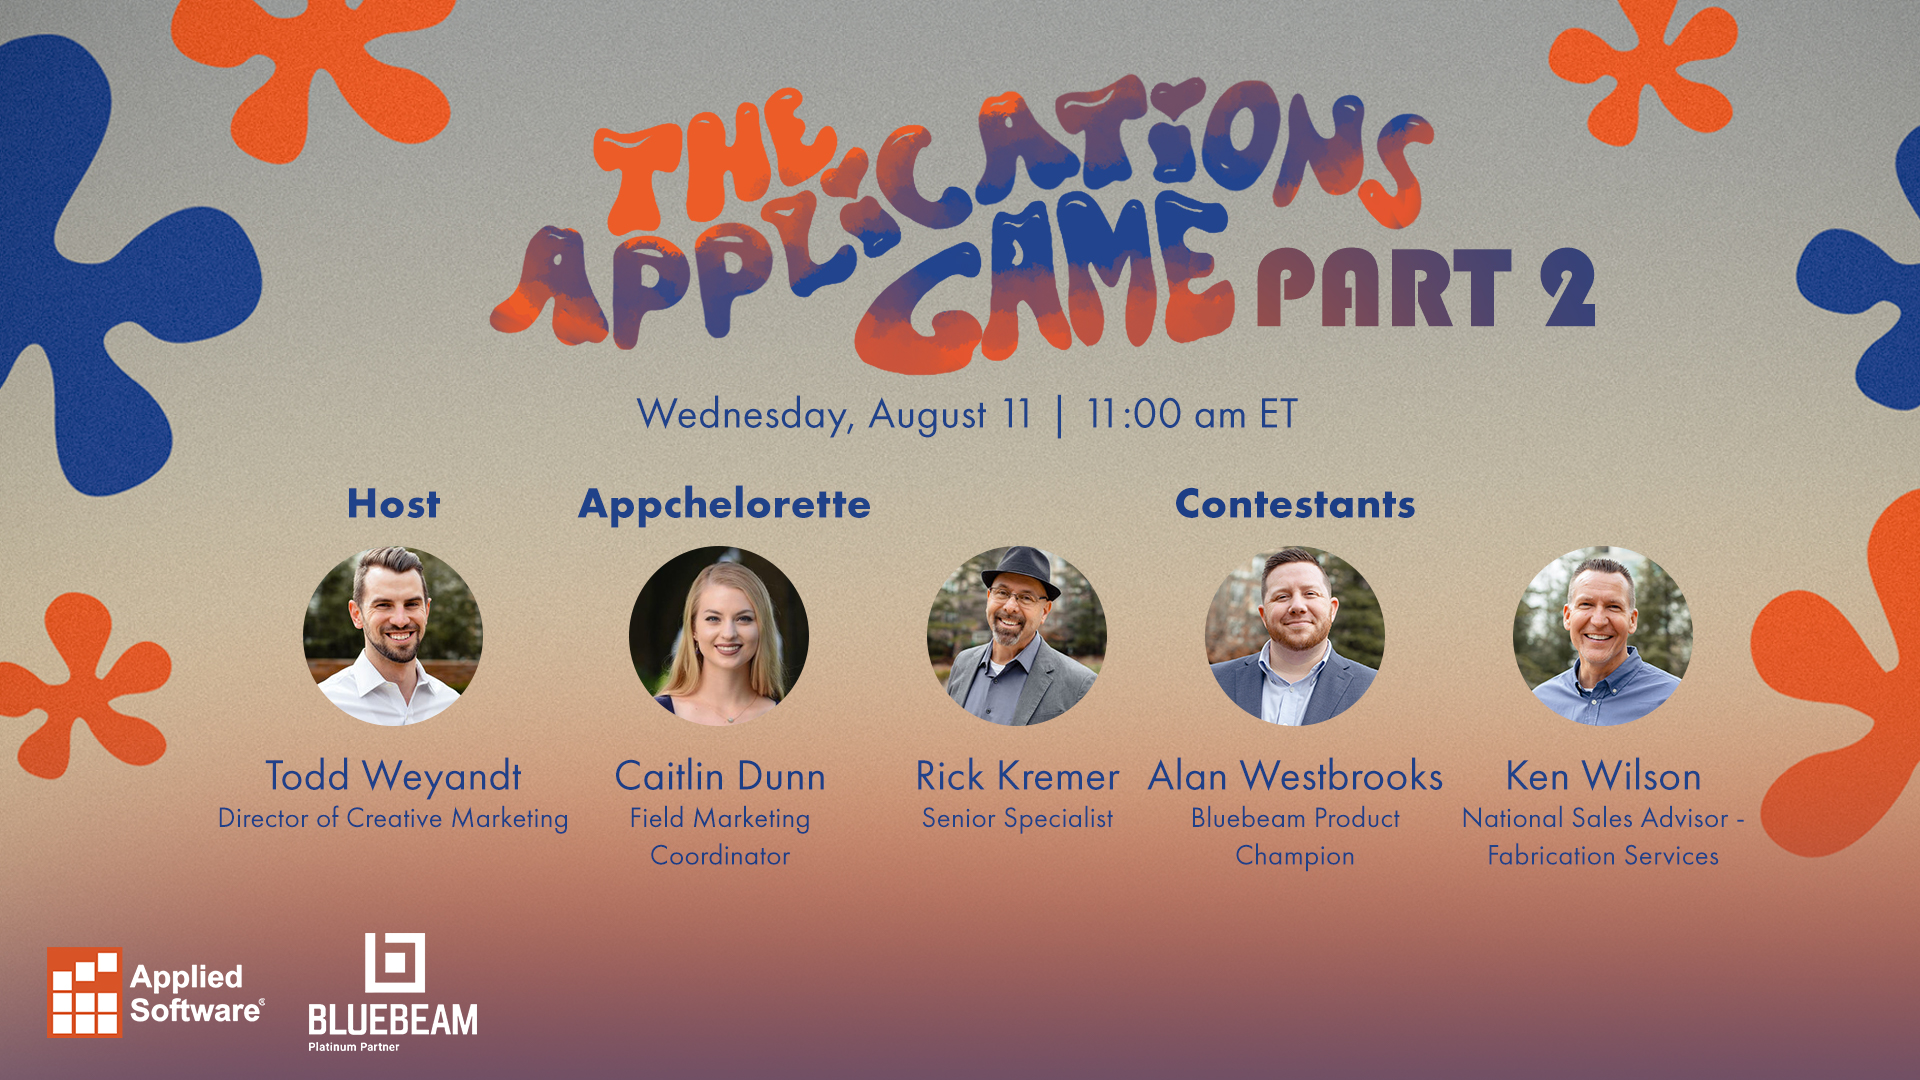 8-11-21 Applications Game Part 2